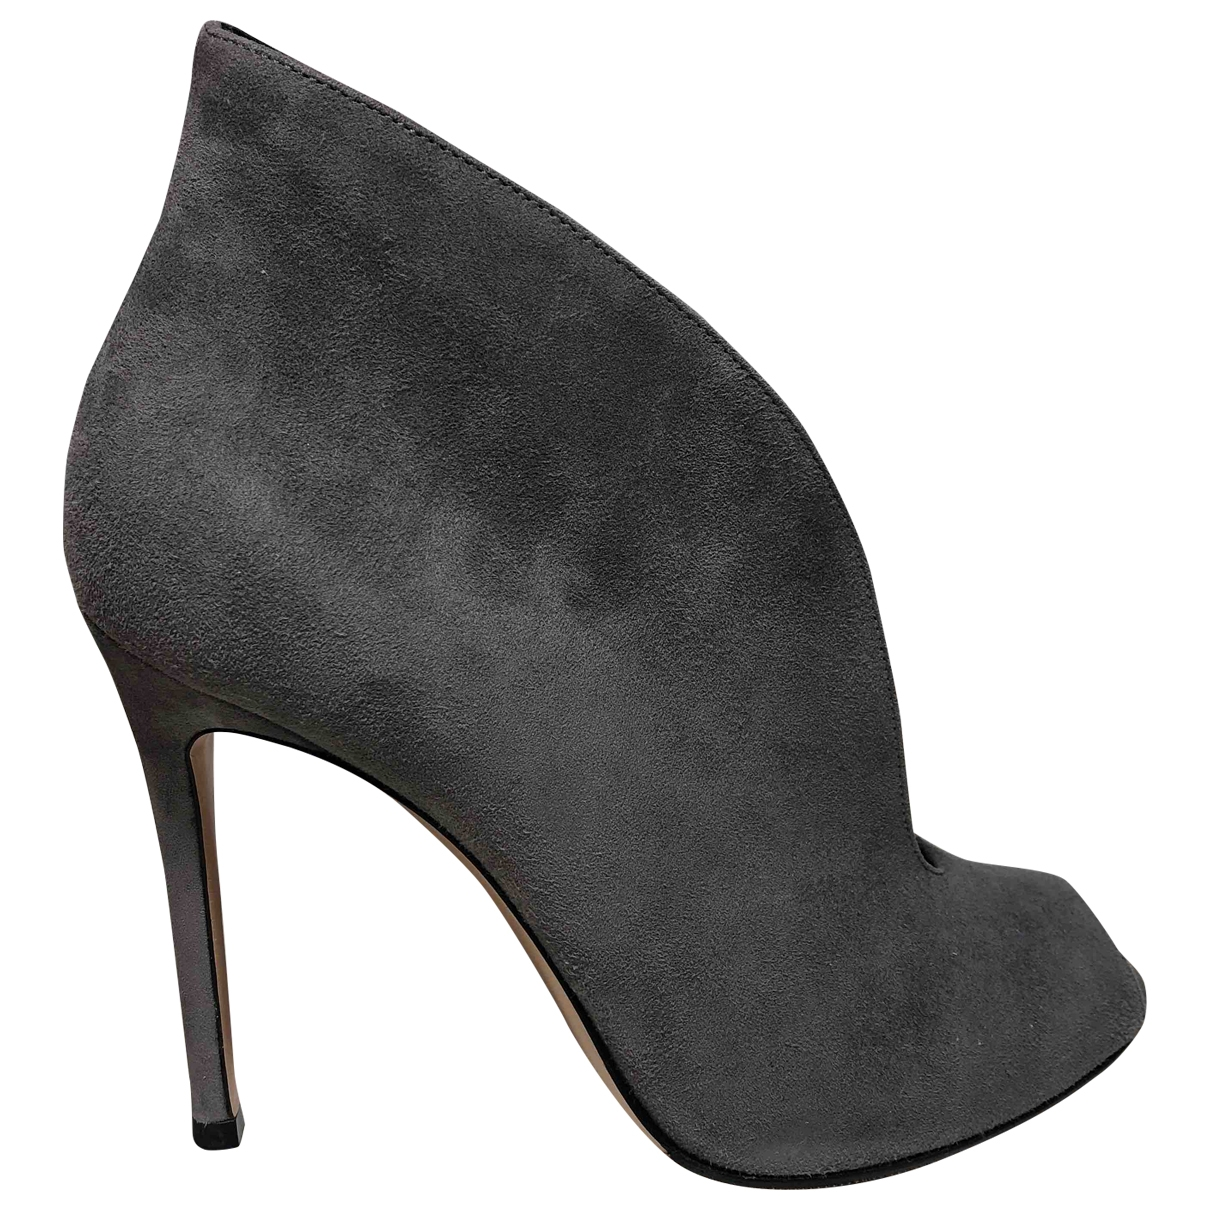 Gianvito Rossi \N Grey Suede Boots for Women 37 EU